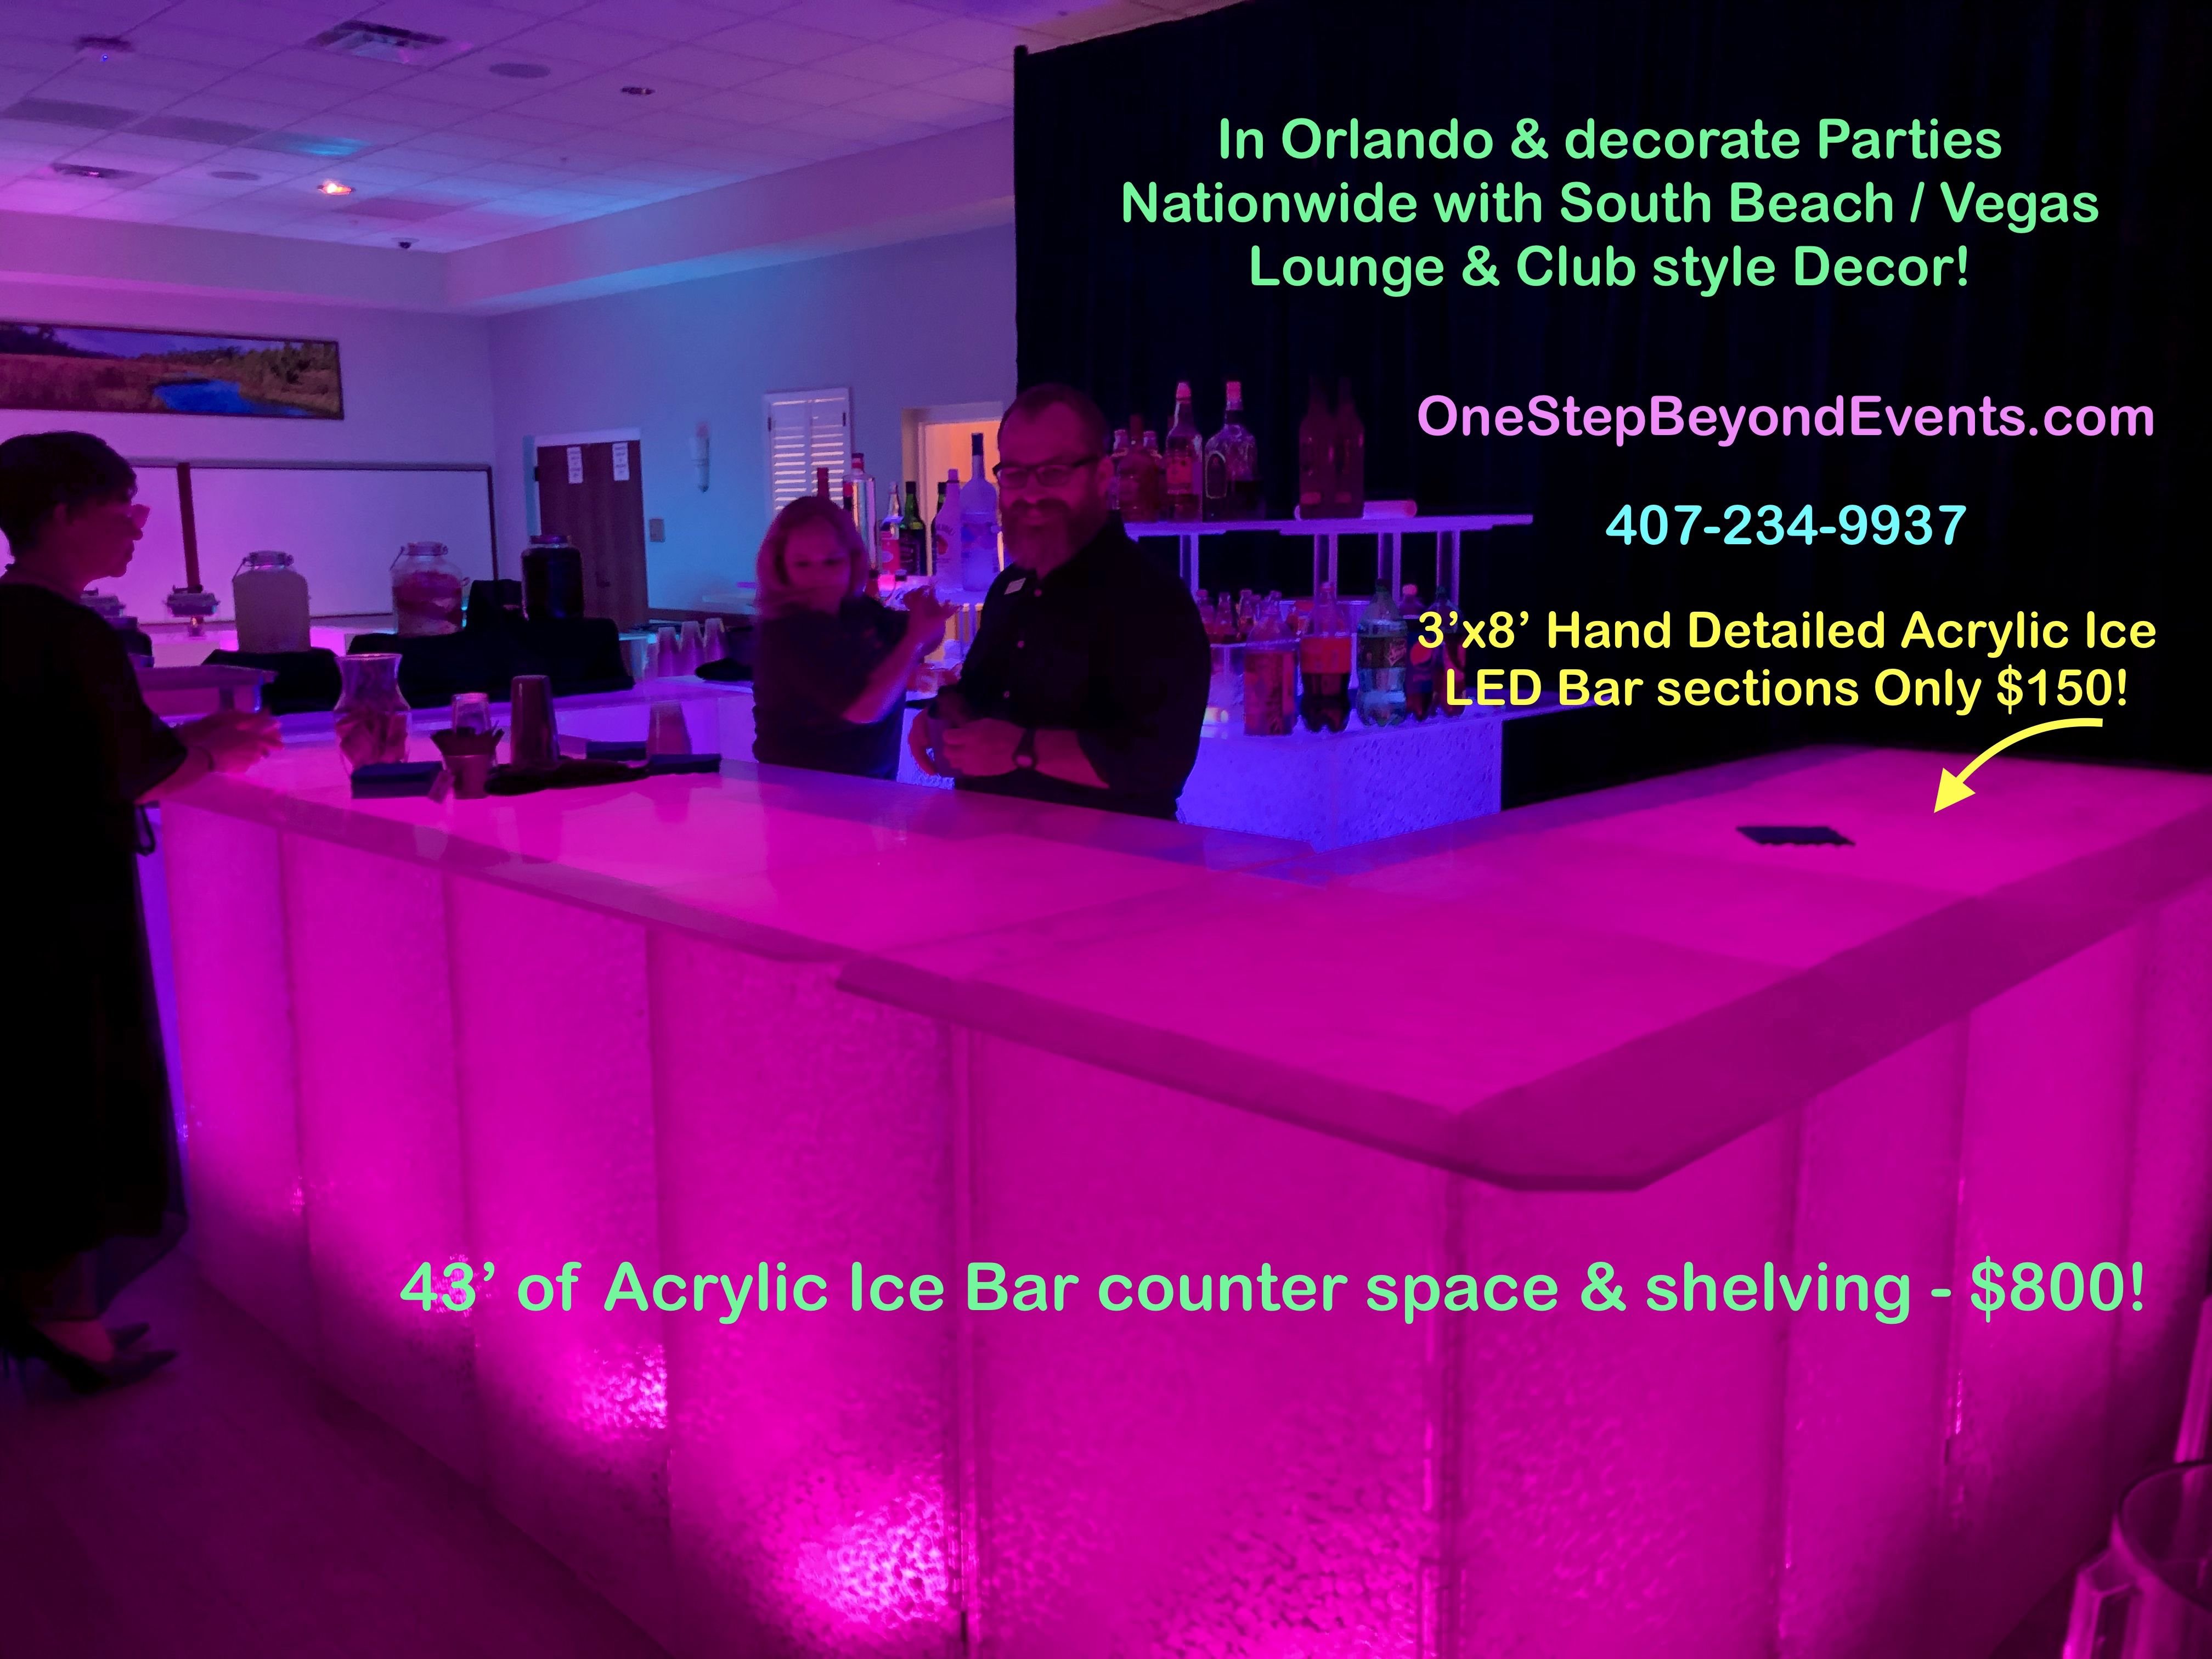 Affordable Party Rentals Lighted Table Led Furniture Rentals South Beach Vegas Style Light Up Decor Elegant 4 X4 In 2020 Glow Table Party Rentals Event Lighting